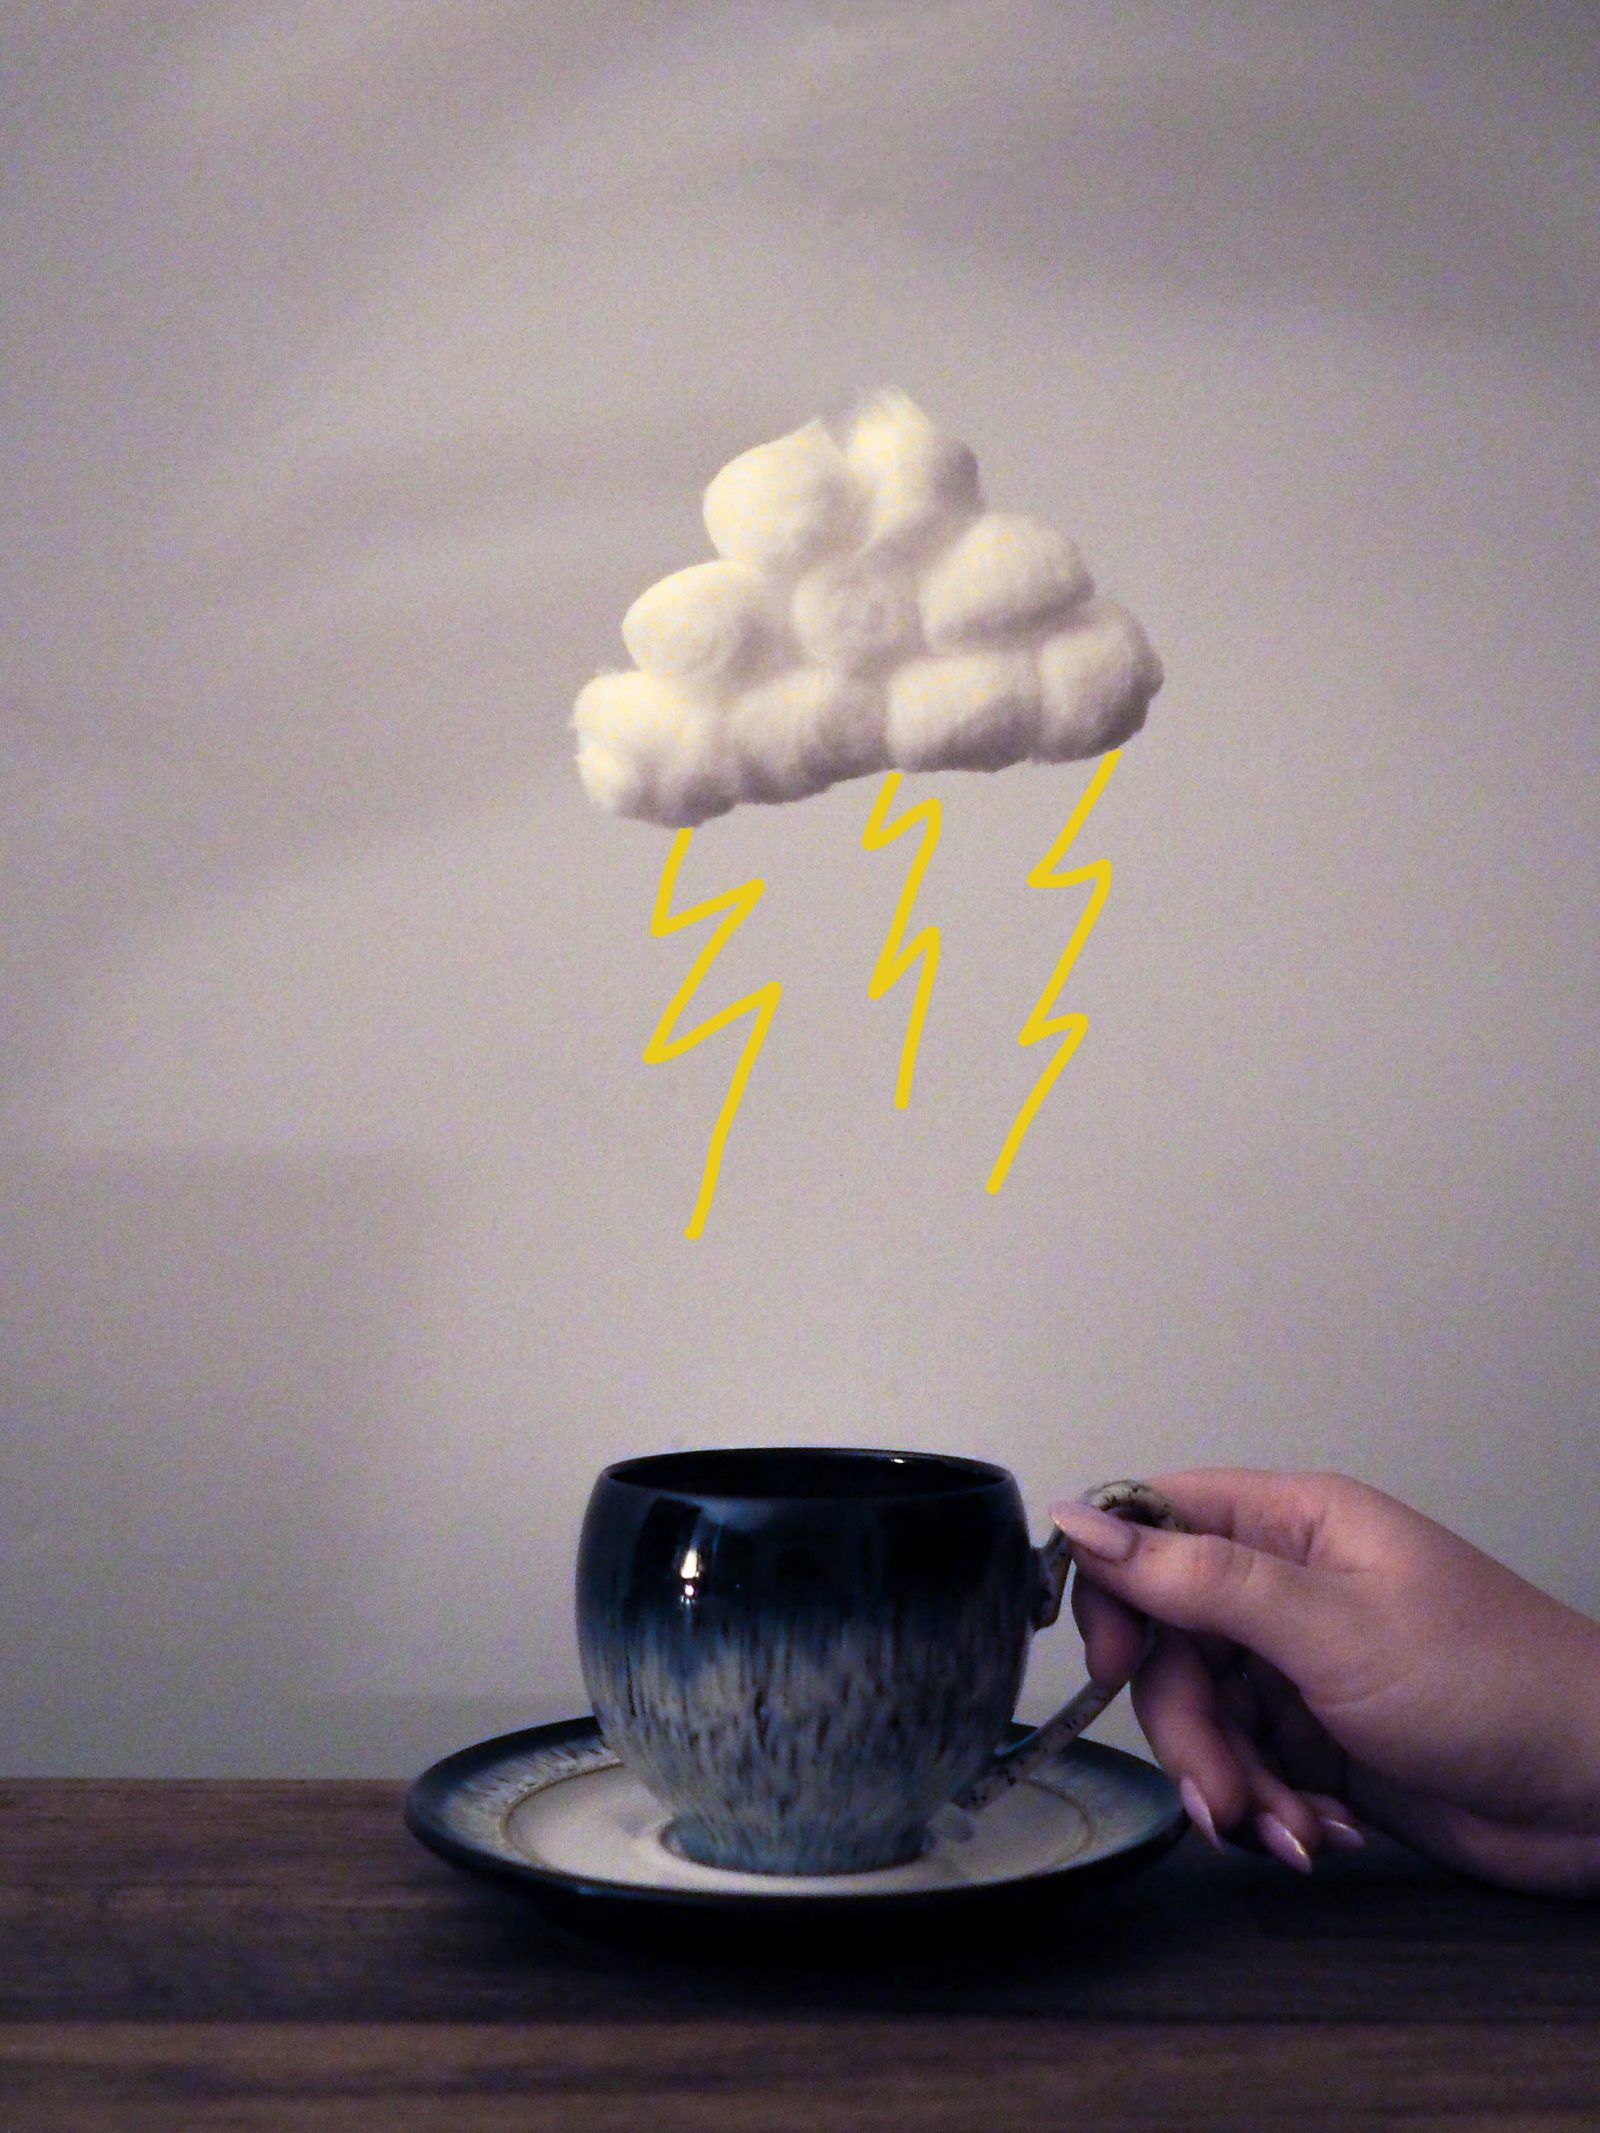 A storm in a teacup and trying to keep my head above water | rhianna olivia